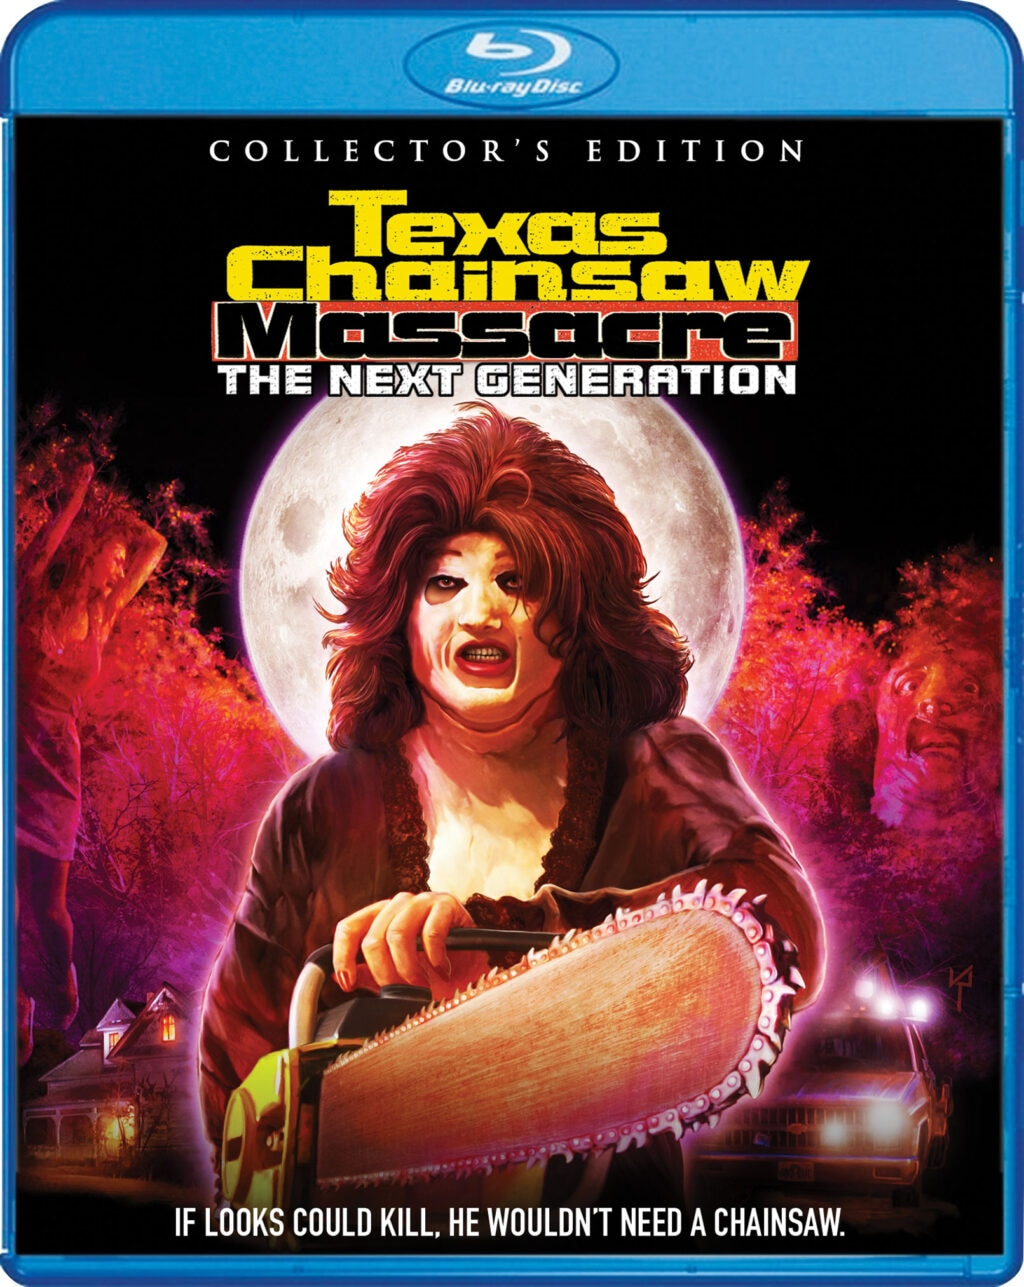 Texas Chainsaw Massacre The Next Generation Blu Ray 1024x1287 - TEXAS CHAINSAW MASSACRE: THE NEXT GENERATION Blu-ray Review - Additional Footage Only Makes a Bad Film Worse